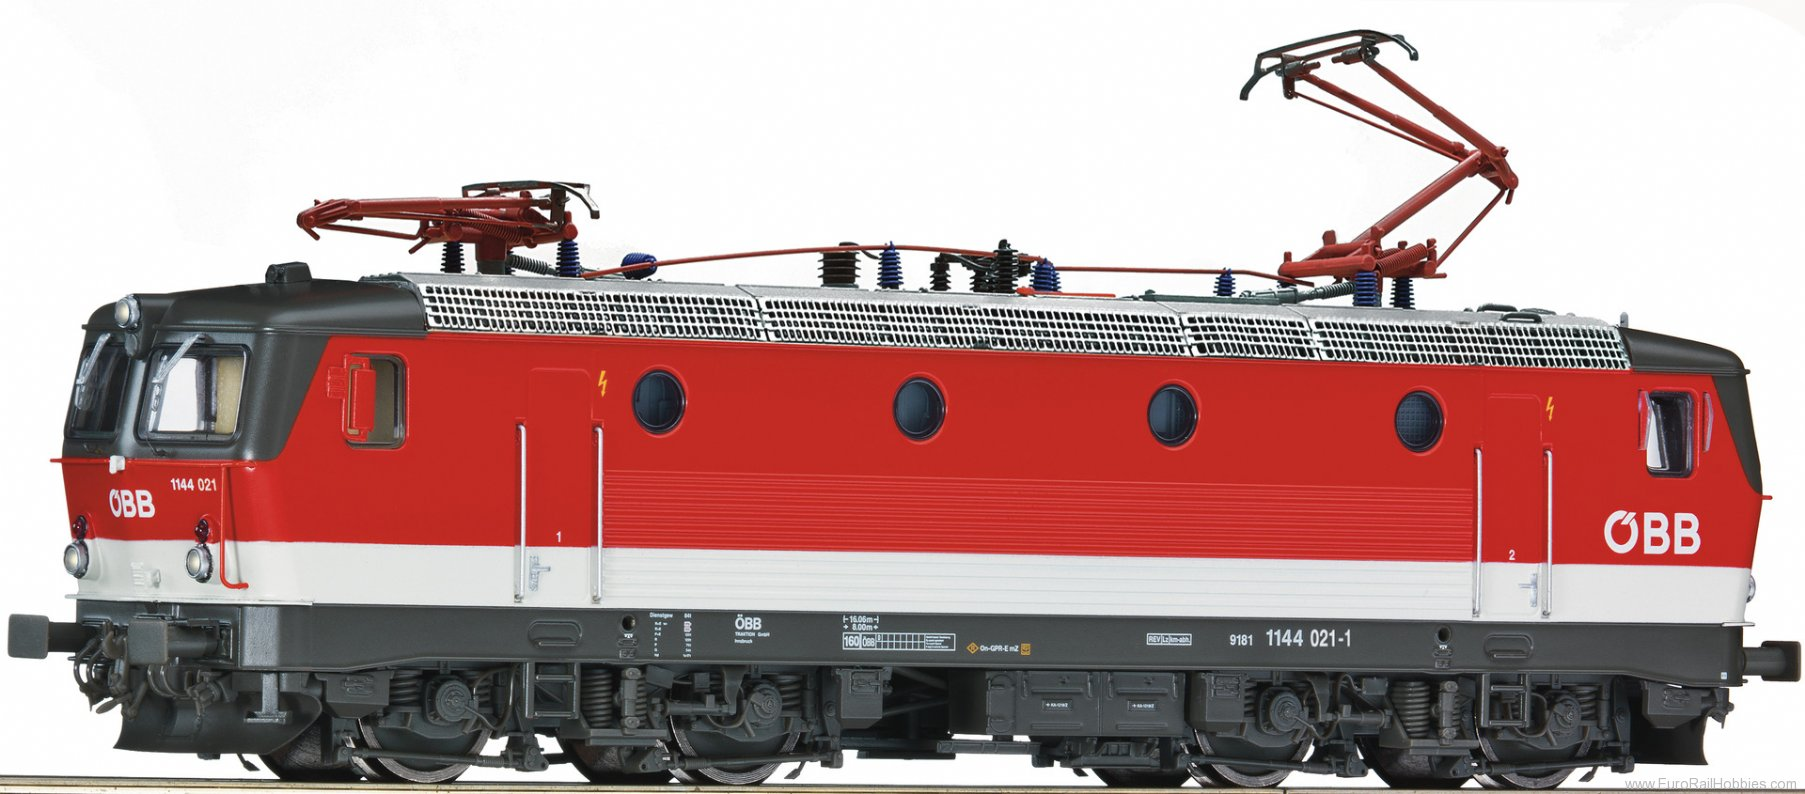 Roco 73555 Electric locomotive 1144 021, OBB (Digital So